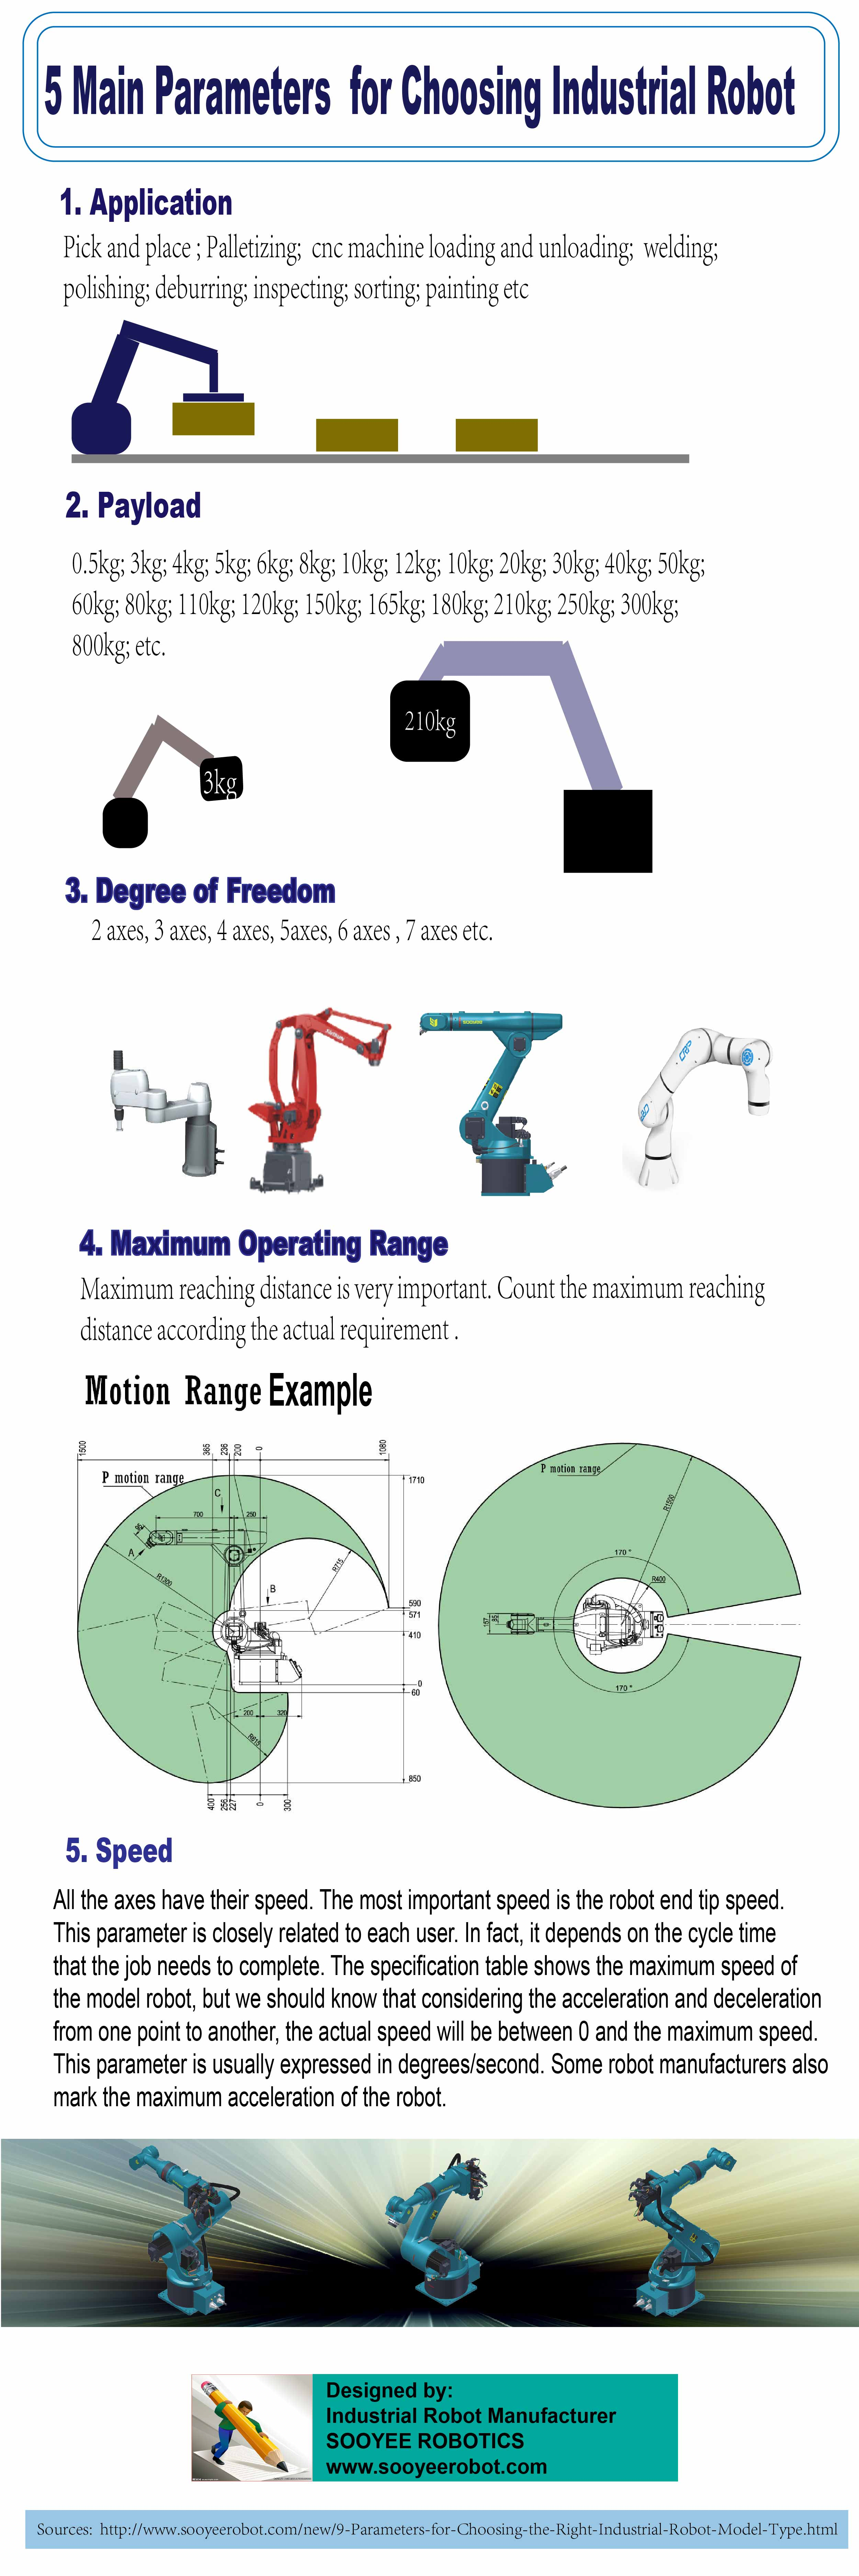 How to buy industrial robot arms?